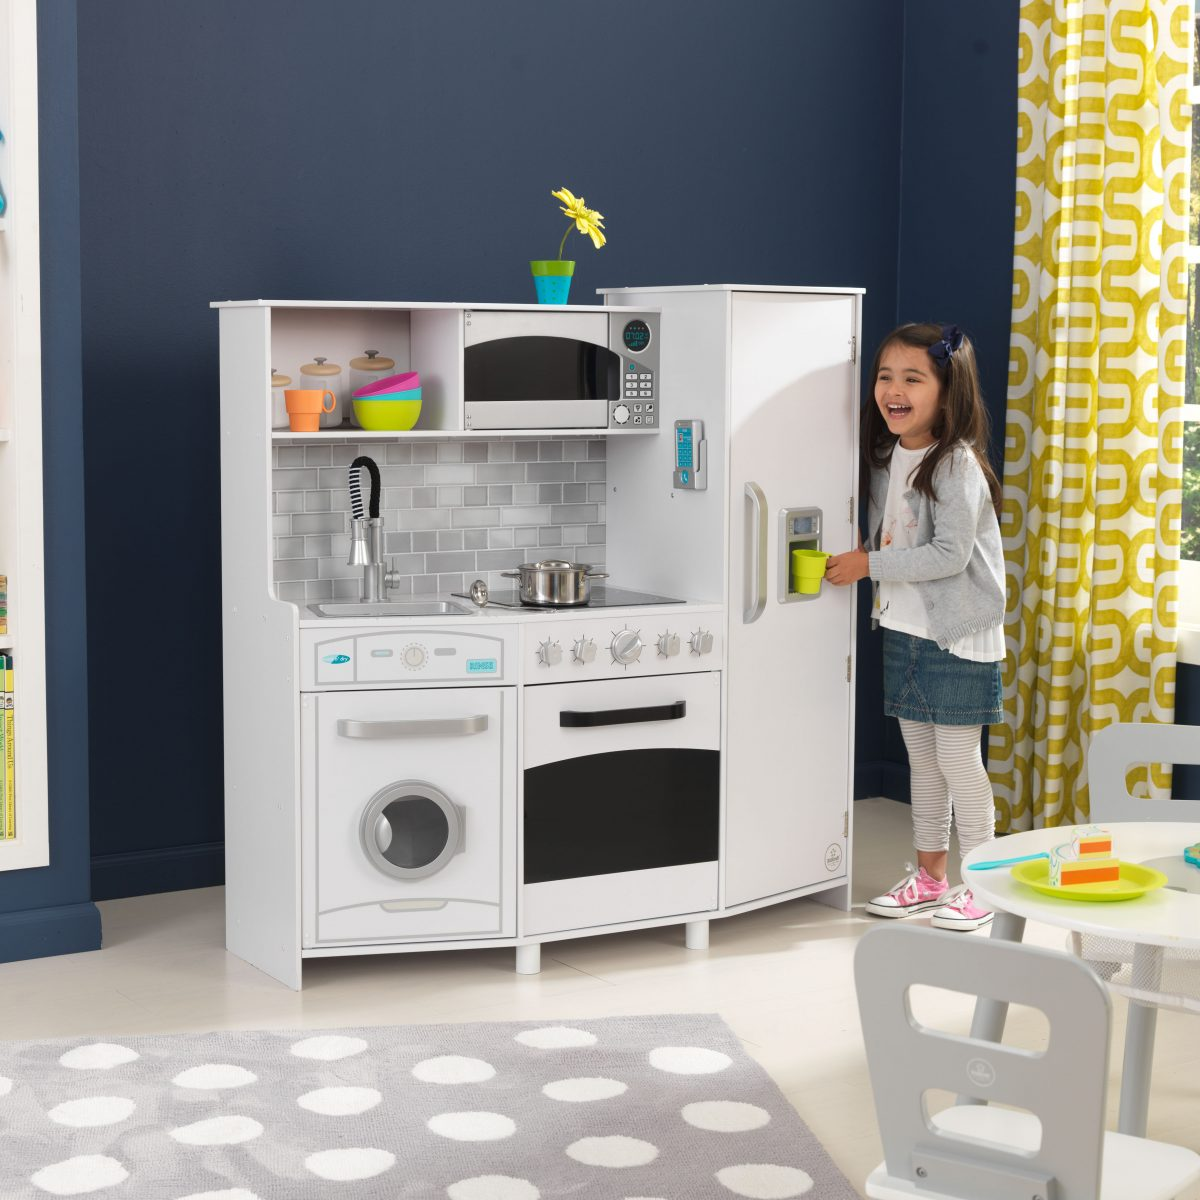 KidKraft Large Play Kitchen with Realistic Lights and Sounds - White